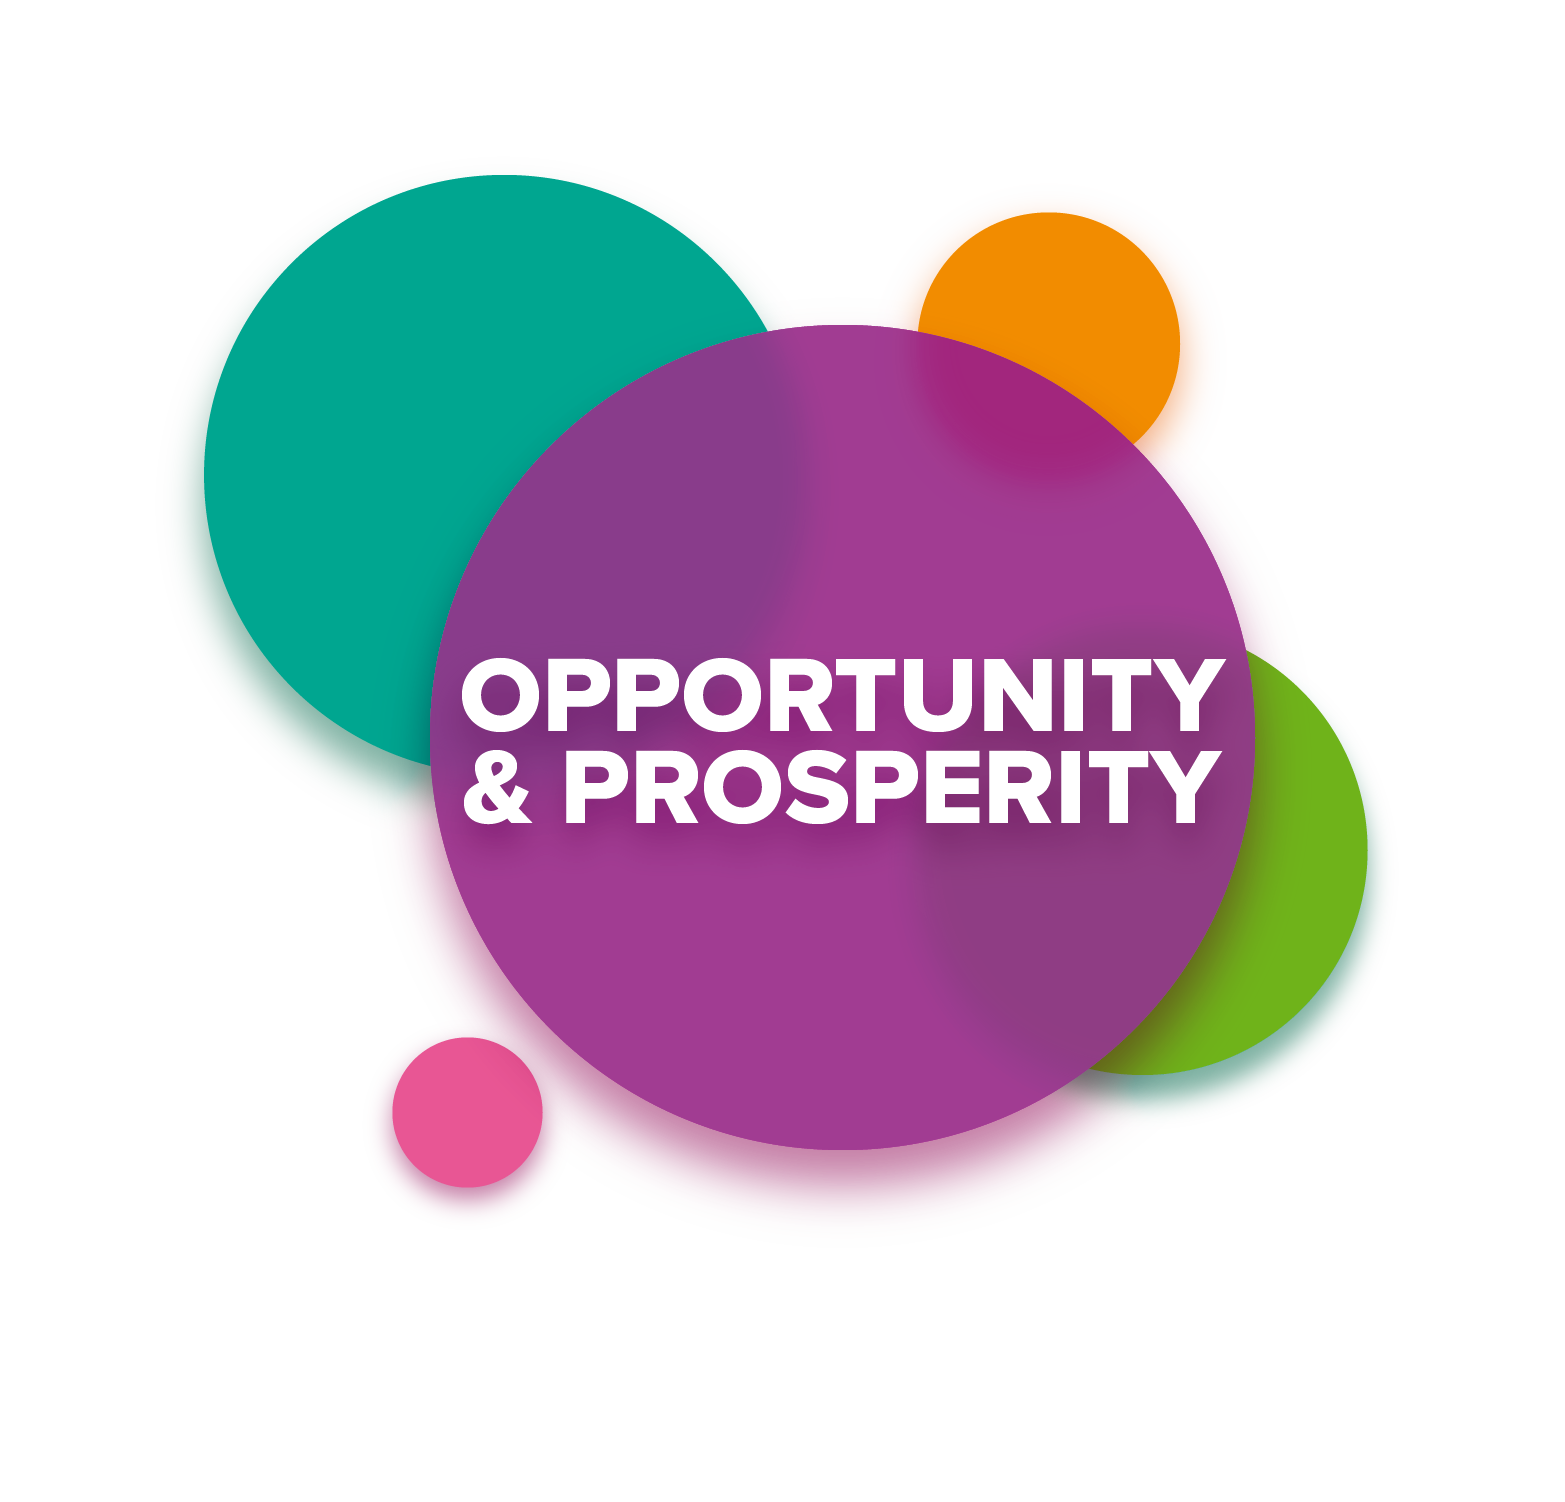 2050 Opportunity and Prosperity logo